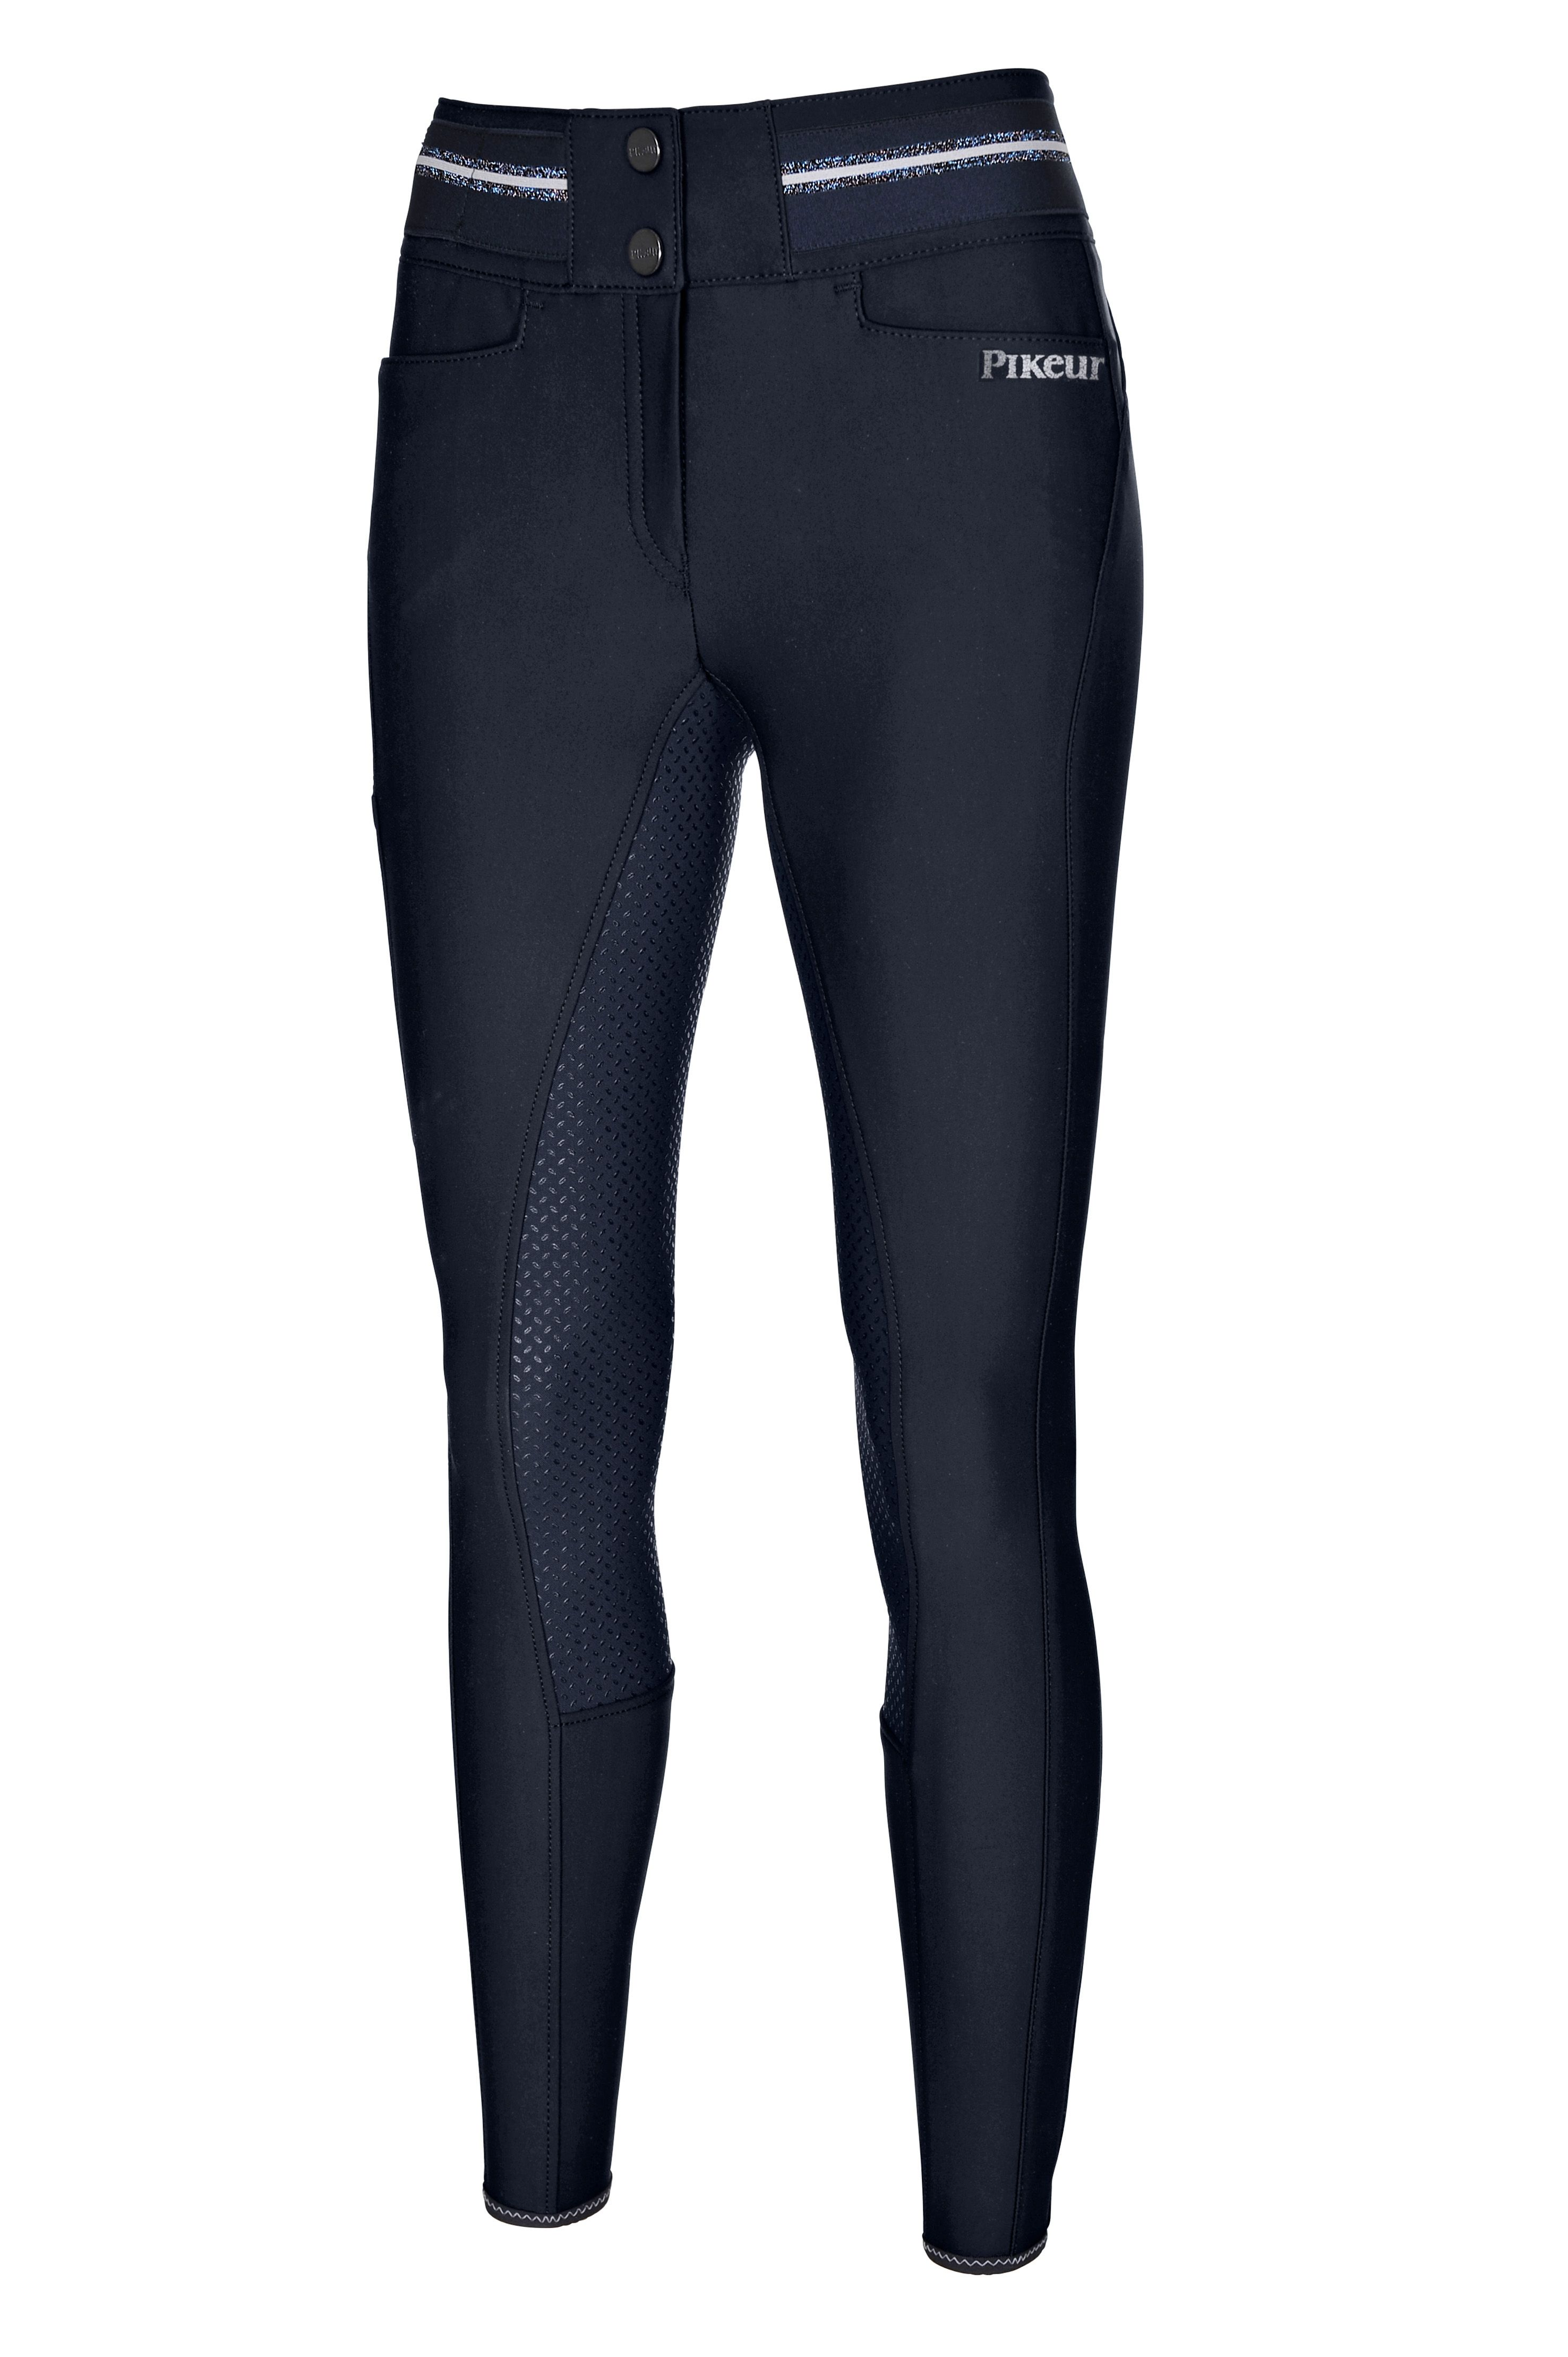 Pikeur Calanja Grip Breeches Full Grip